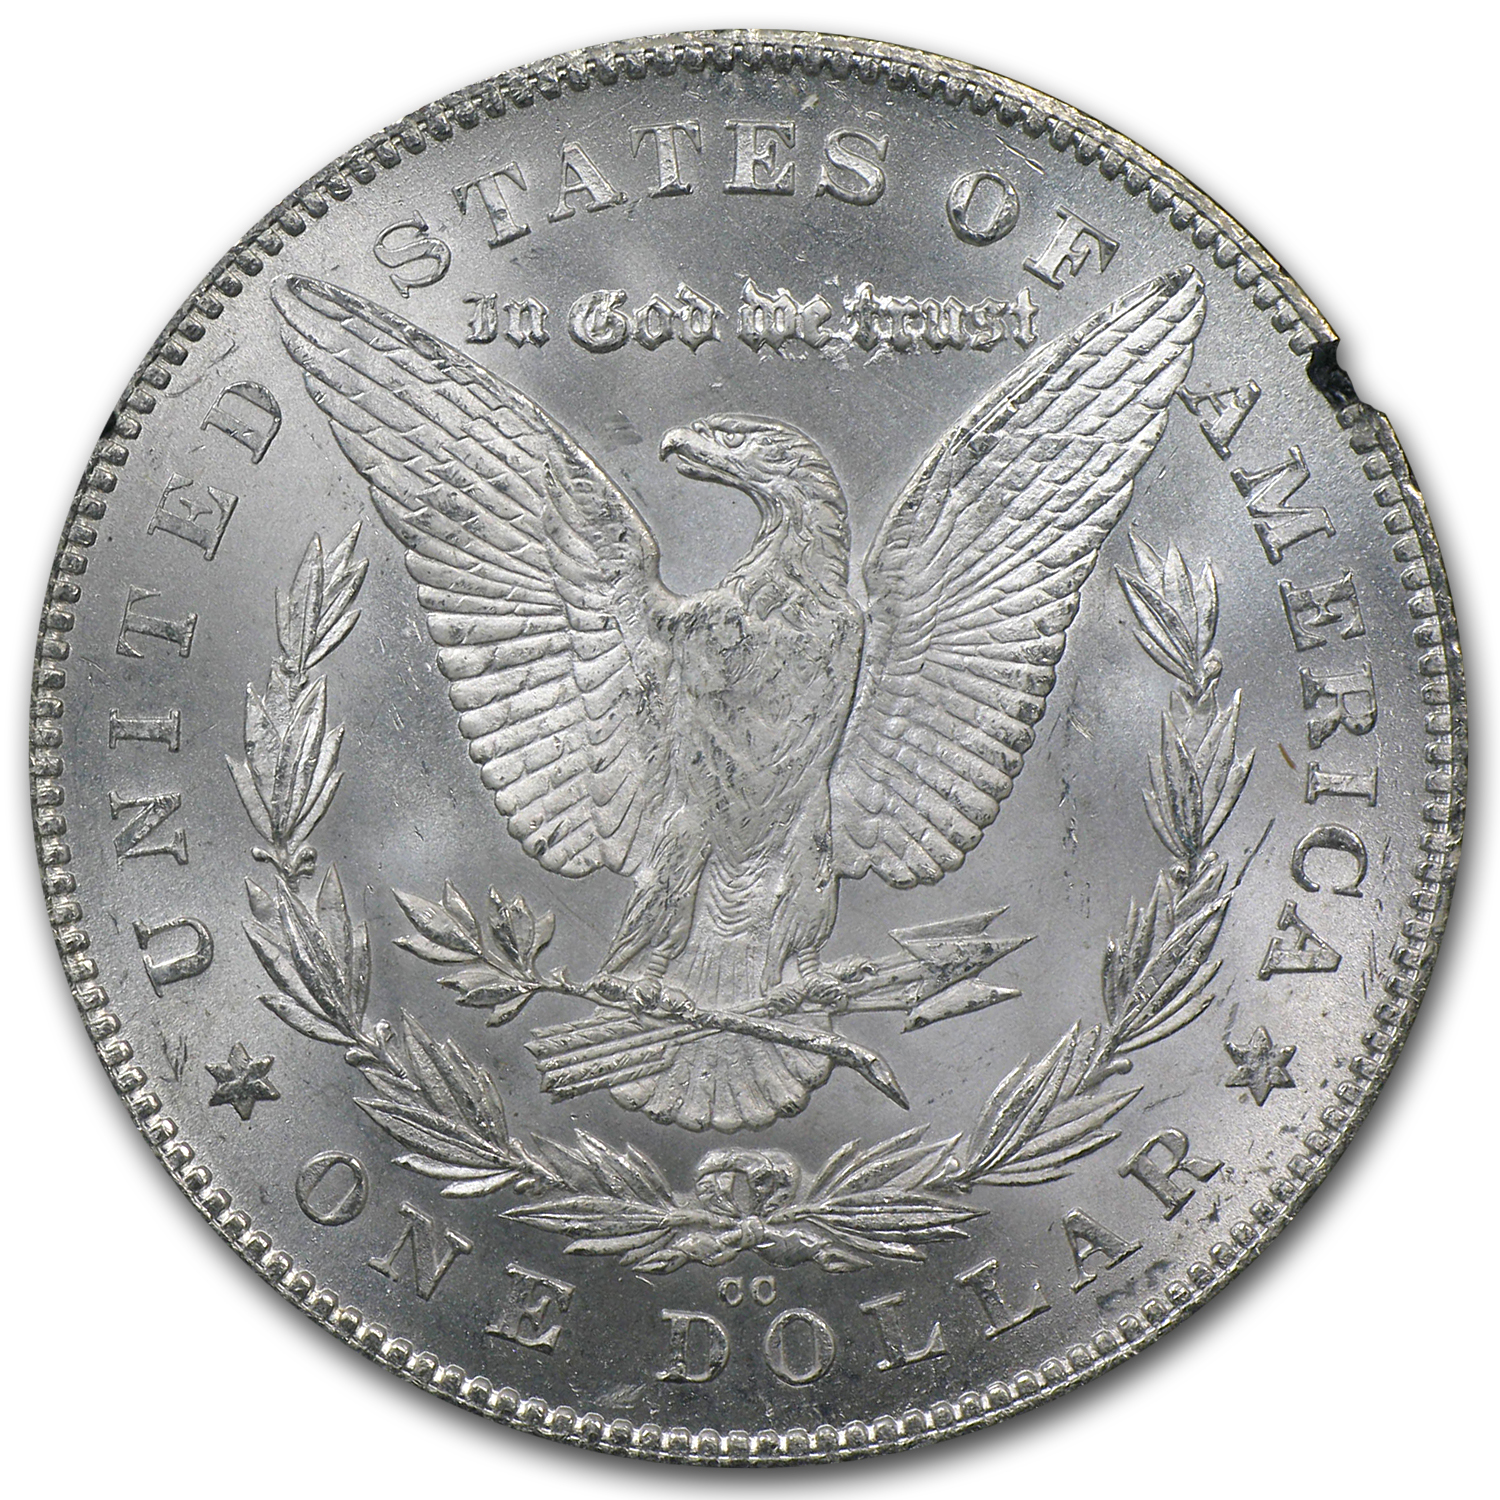 1880-CC Reverse of 1878 Morgan Dollar MS-64 NGC - GSA Certified